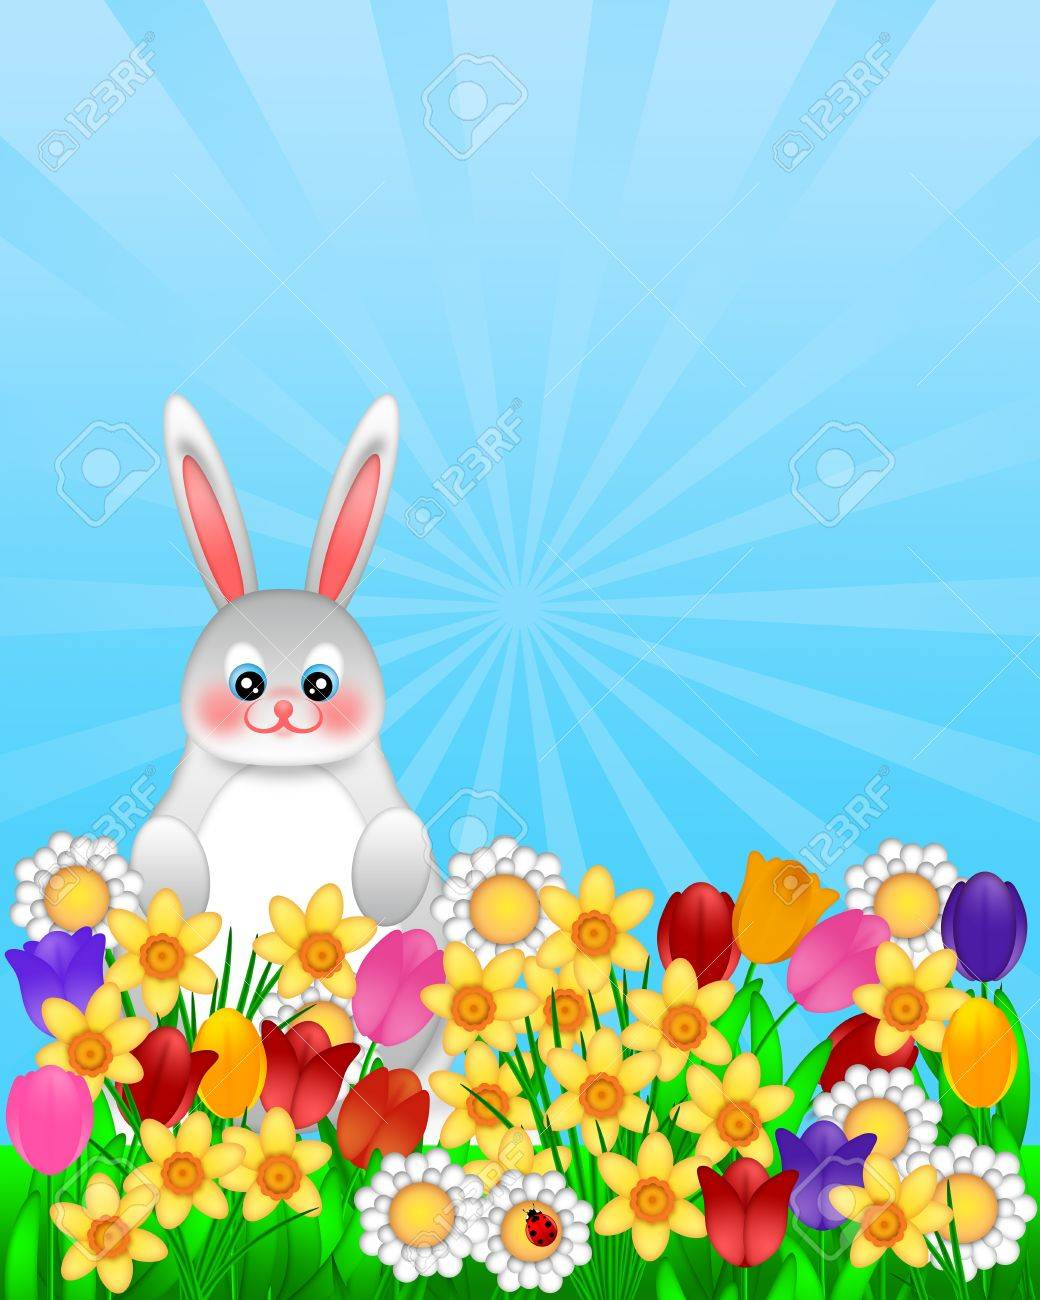 Easter Bunny Amongst Spring Flowers with Ladybug Illustration Isolated on White Background Stock Photo - 12883594